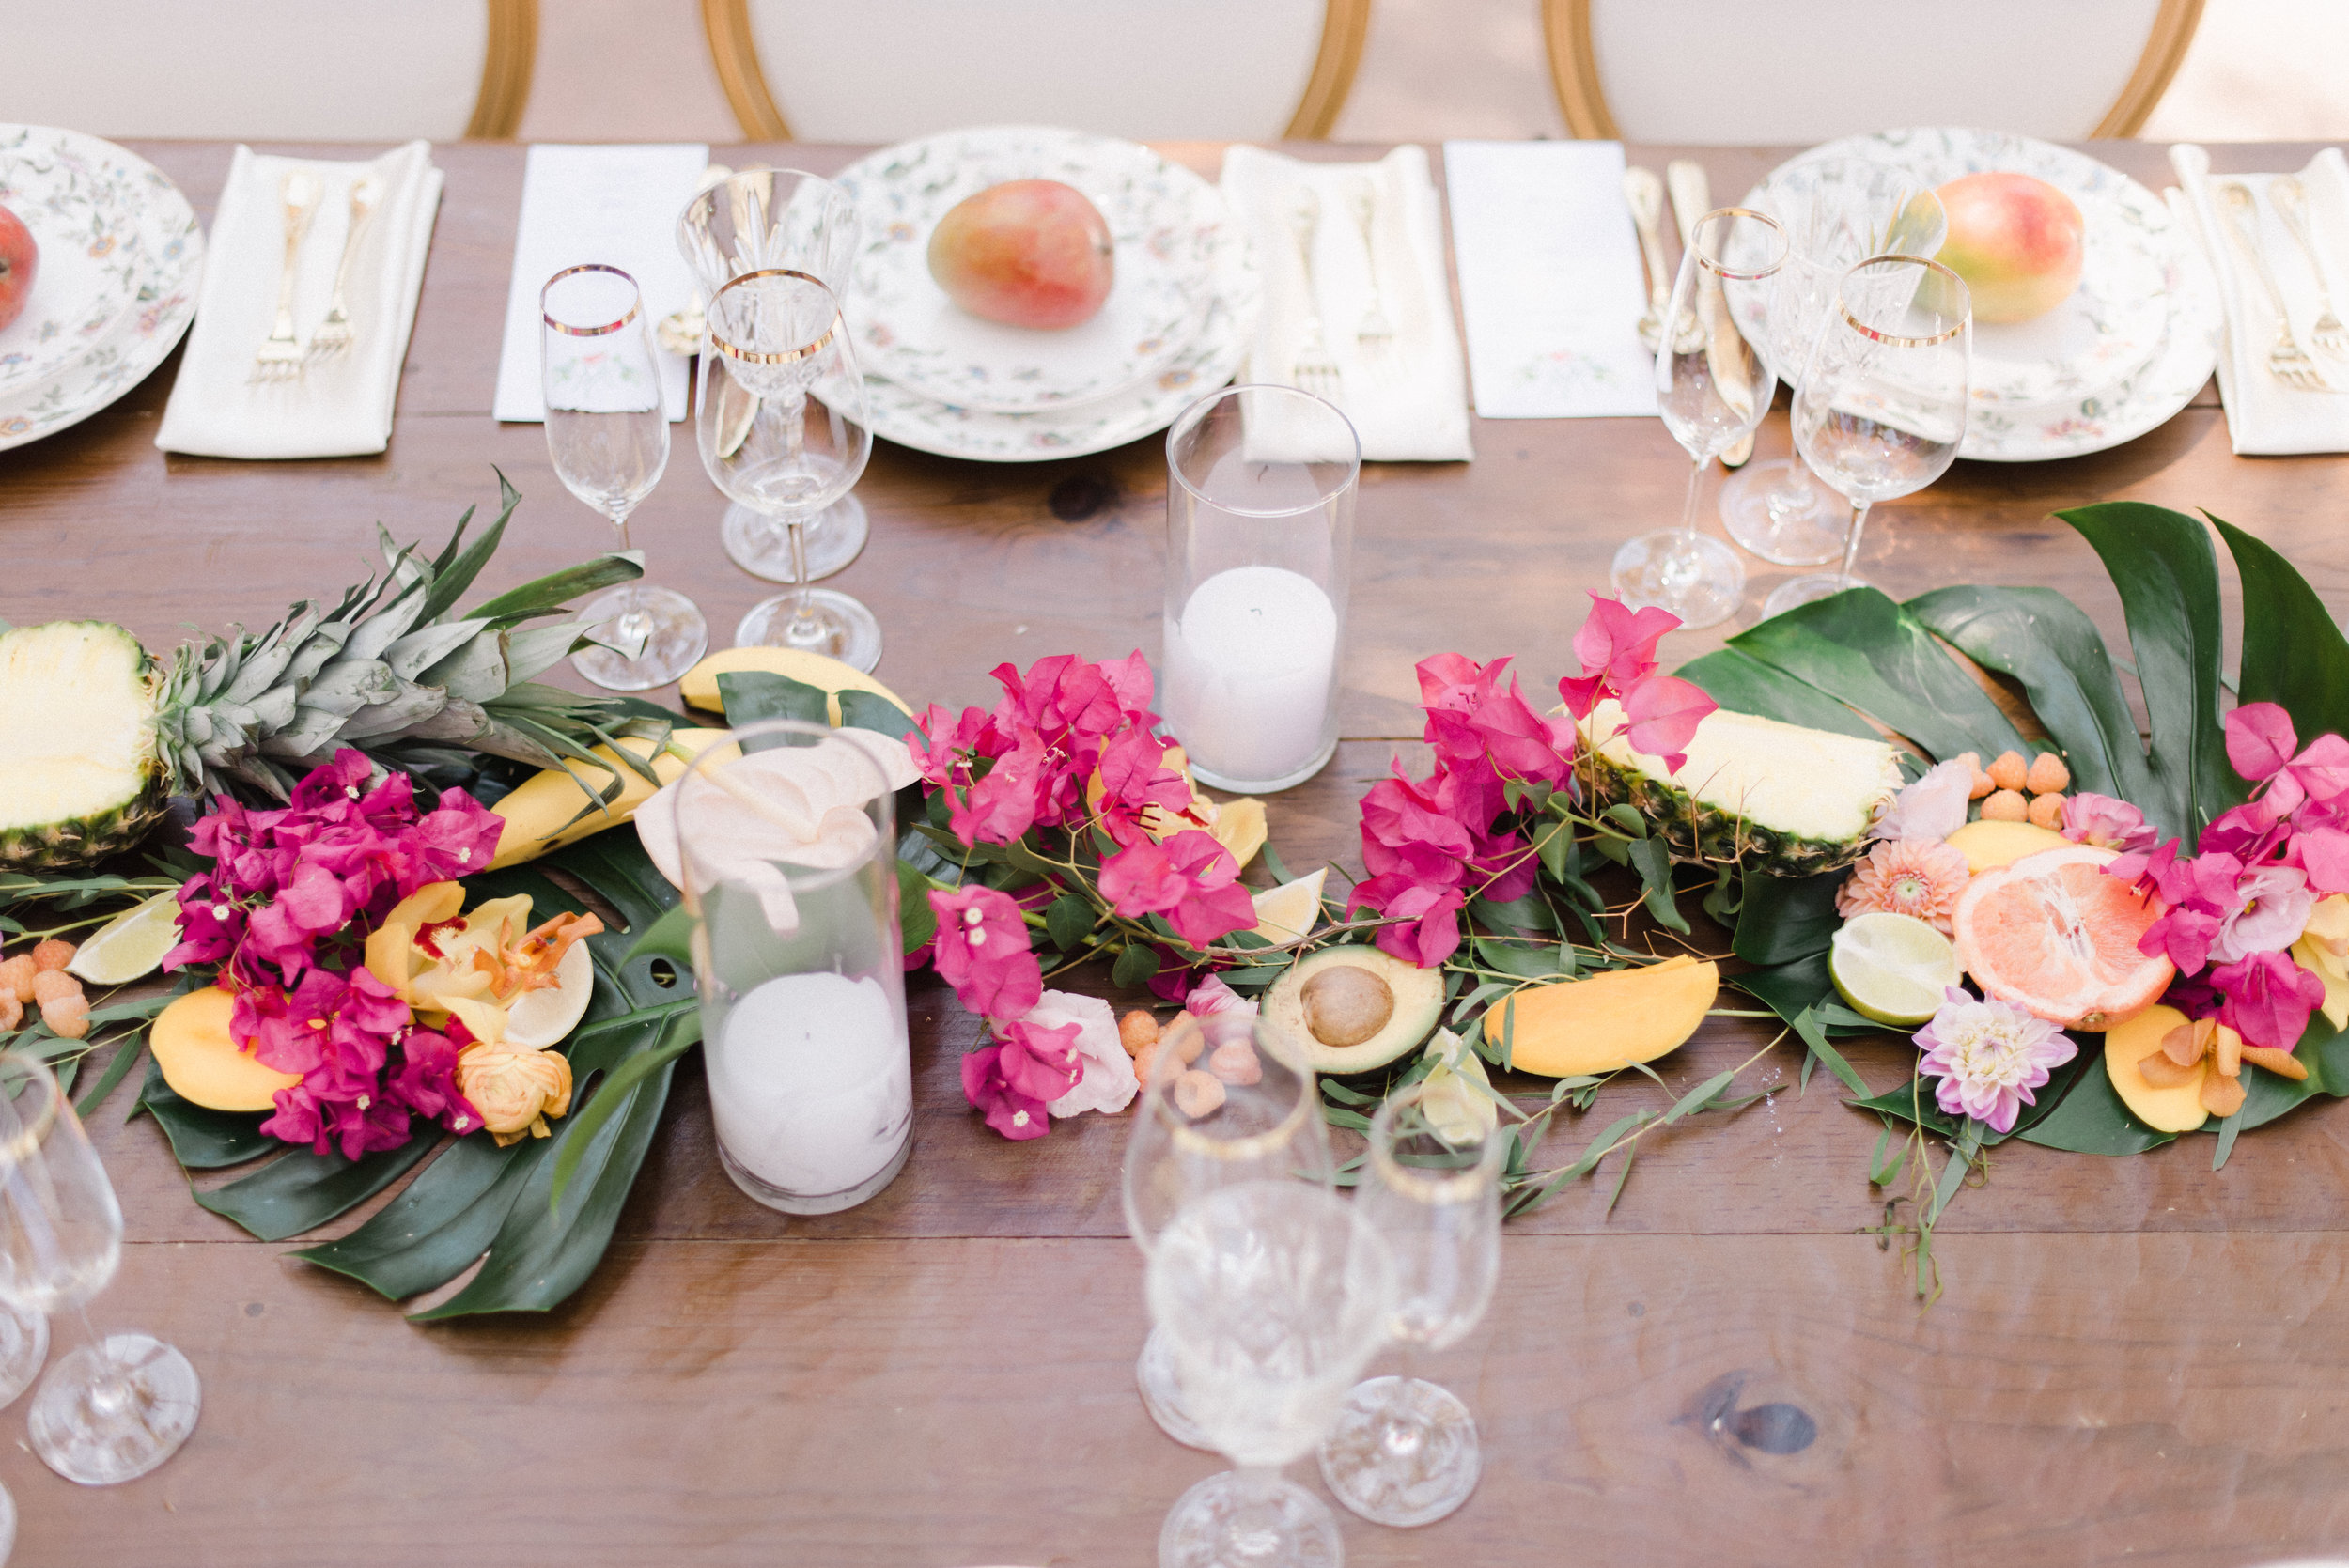 Avocado, tropical leaves, bougainvillea flowers, pineapple wedding table.jpg